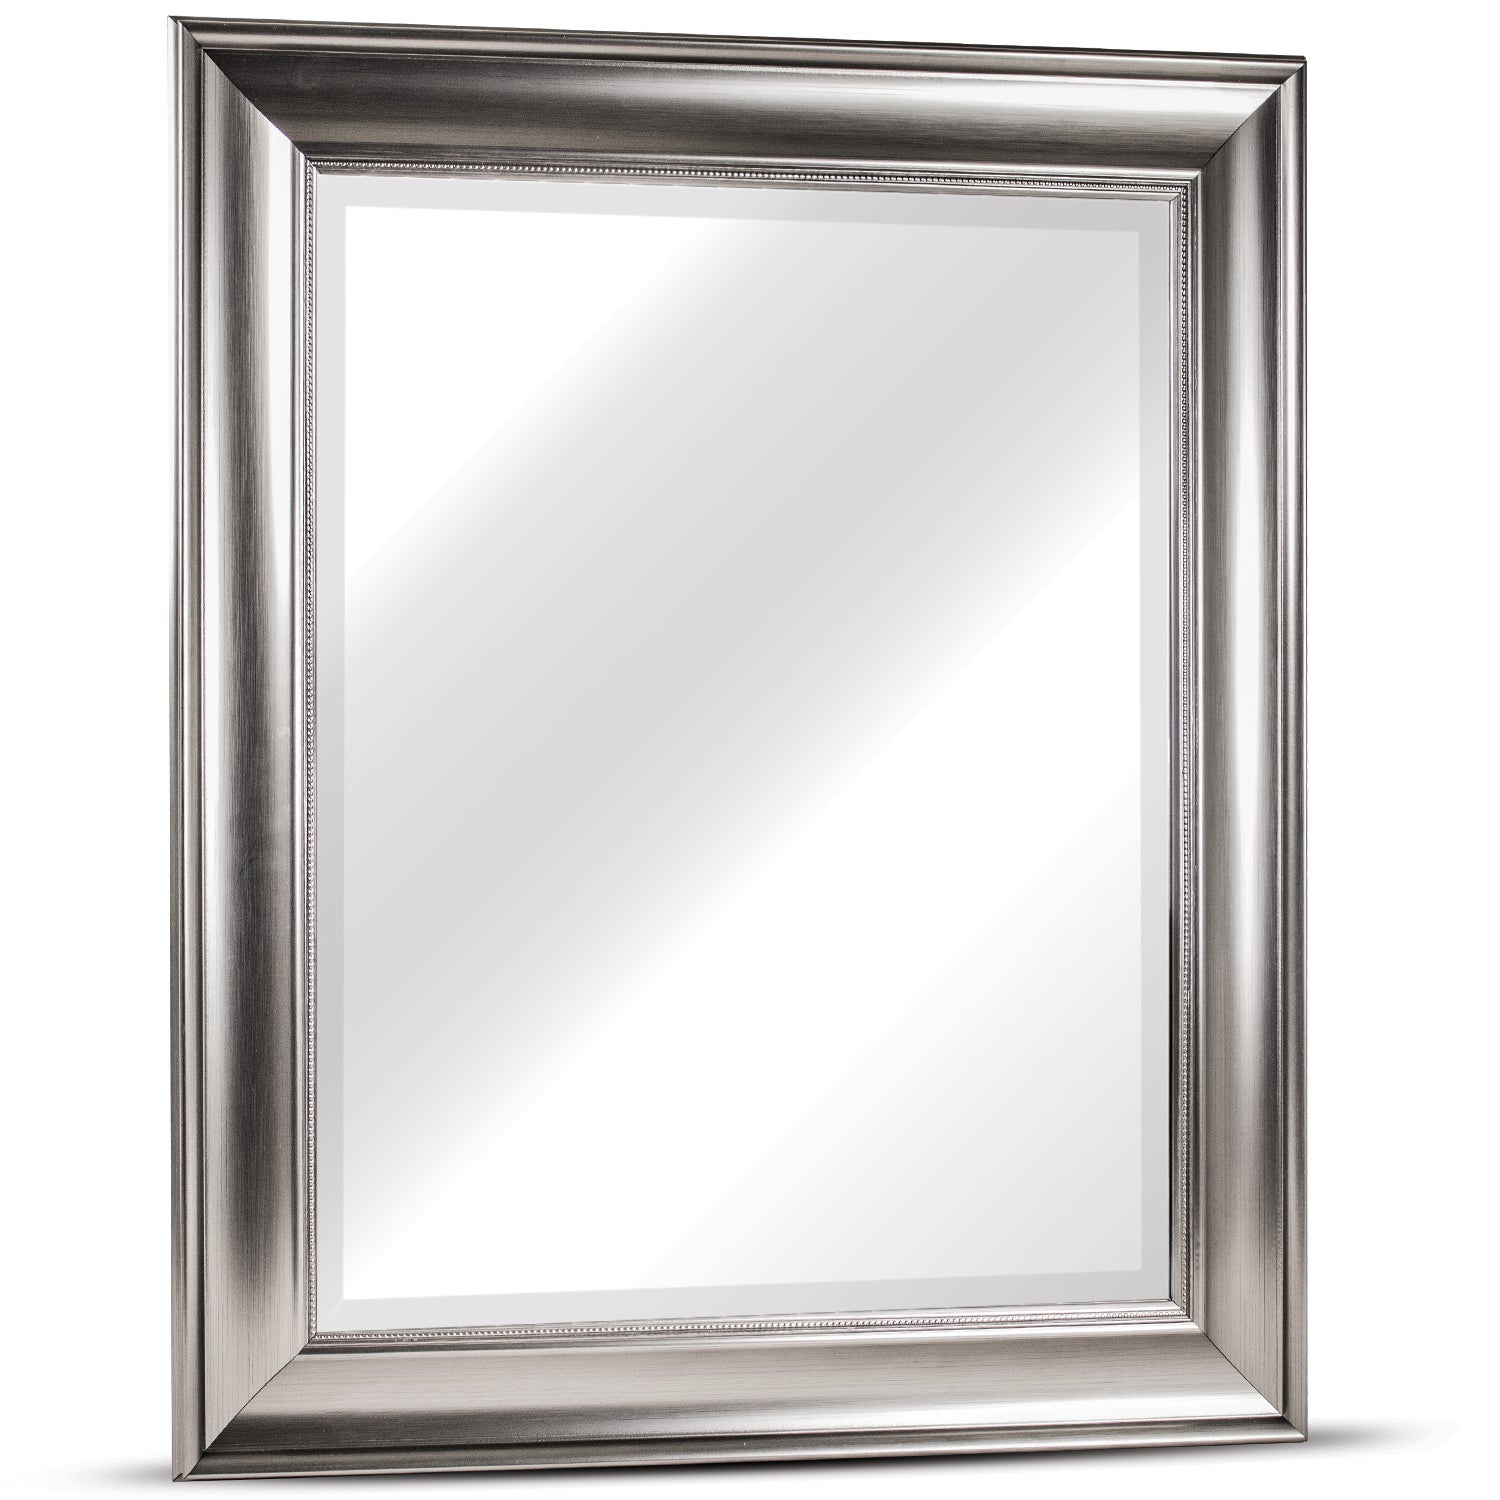 American Art Decor Clarence Medium Rectangular Silver Textured Accent  Framed Beveled Wall Vanity Mirror – A/n Pertaining To Rectangle Pewter Beveled Wall Mirrors (Image 4 of 20)